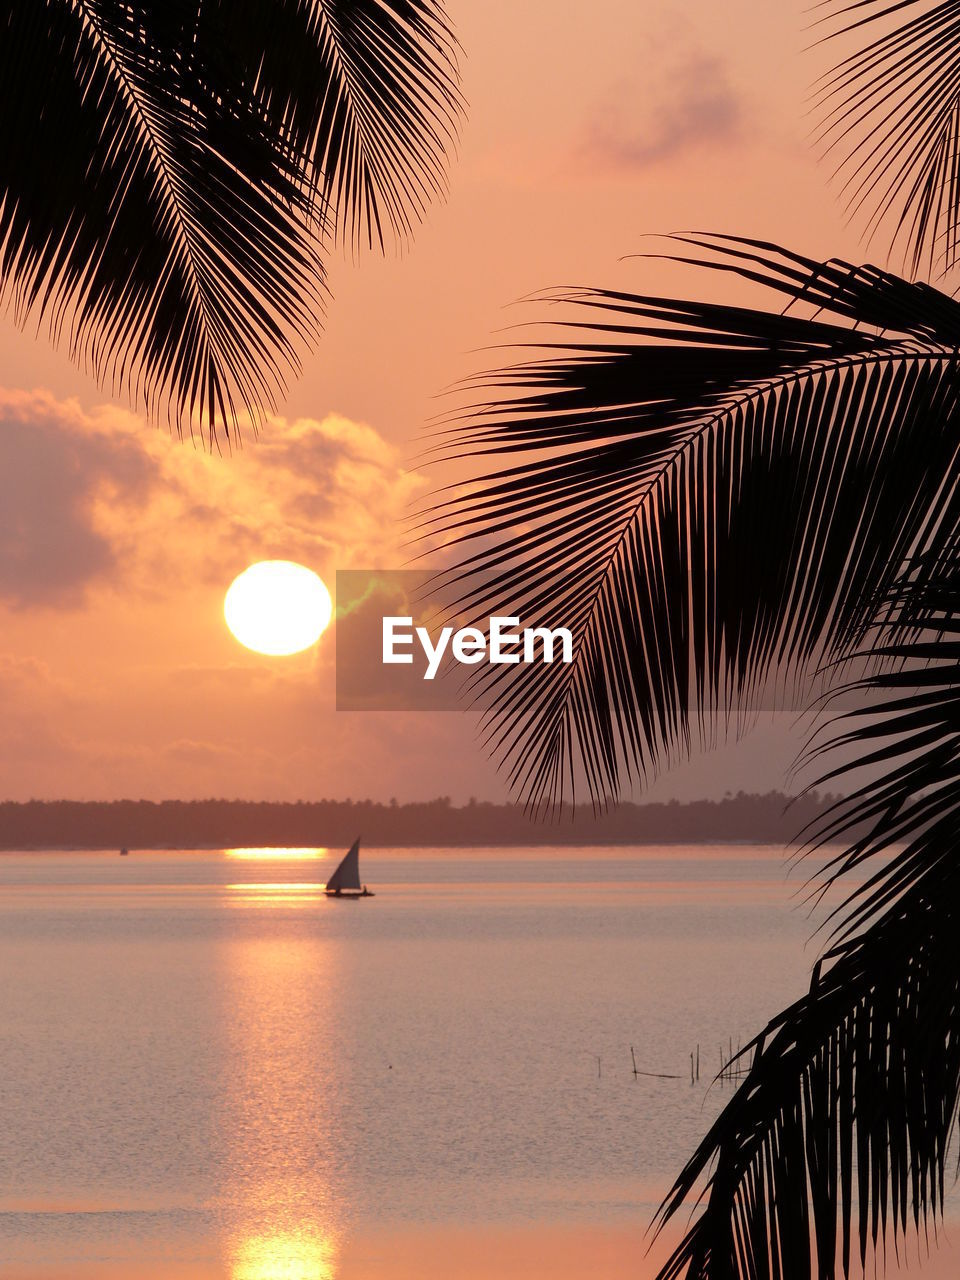 sky, sunset, palm tree, water, tree, tropical climate, sea, scenics - nature, silhouette, beauty in nature, tranquility, nature, tranquil scene, horizon over water, beach, orange color, plant, palm leaf, leaf, sun, outdoors